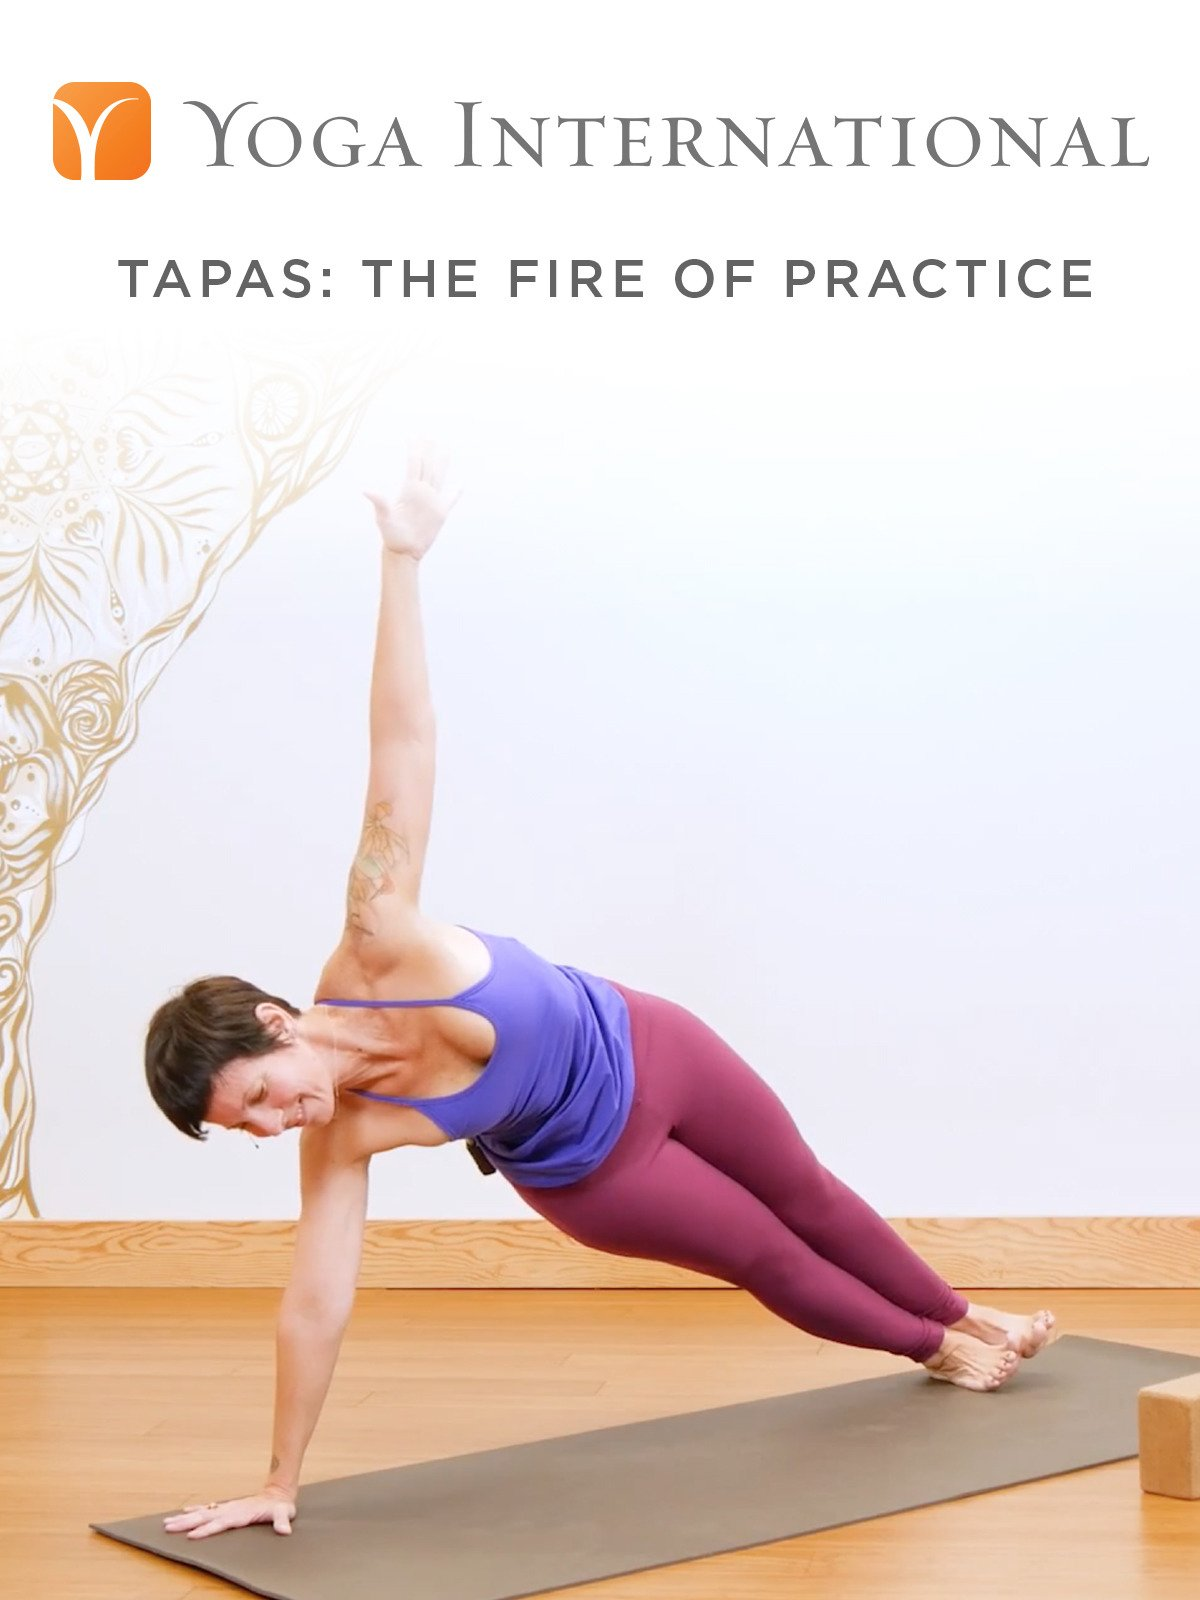 Tapas: The Fire of Practice